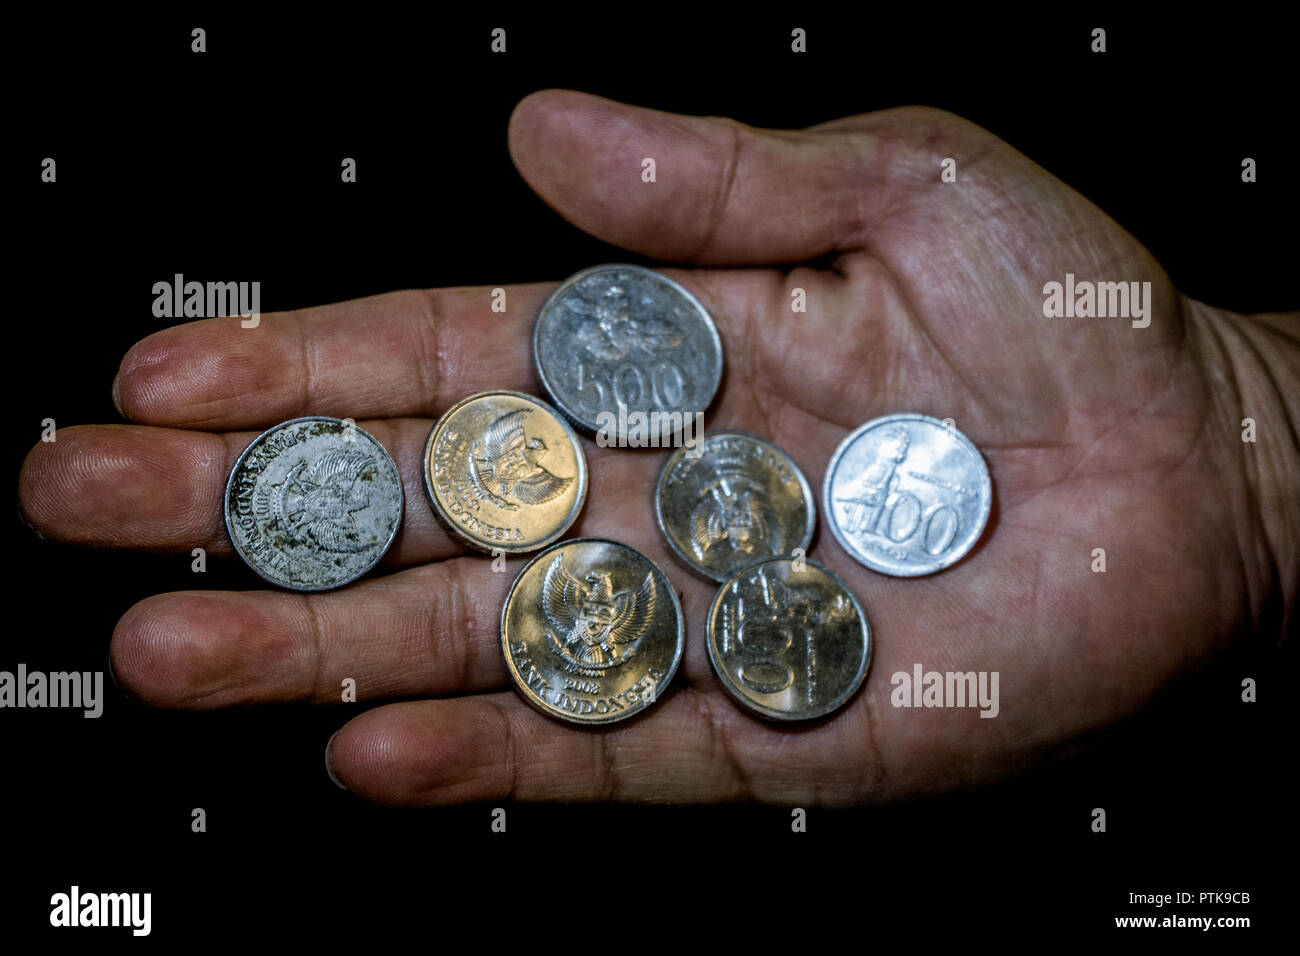 Indonesia rupiah coins in the hand of an asian person isolated. Concept of small salary not enough for the living - Stock Image